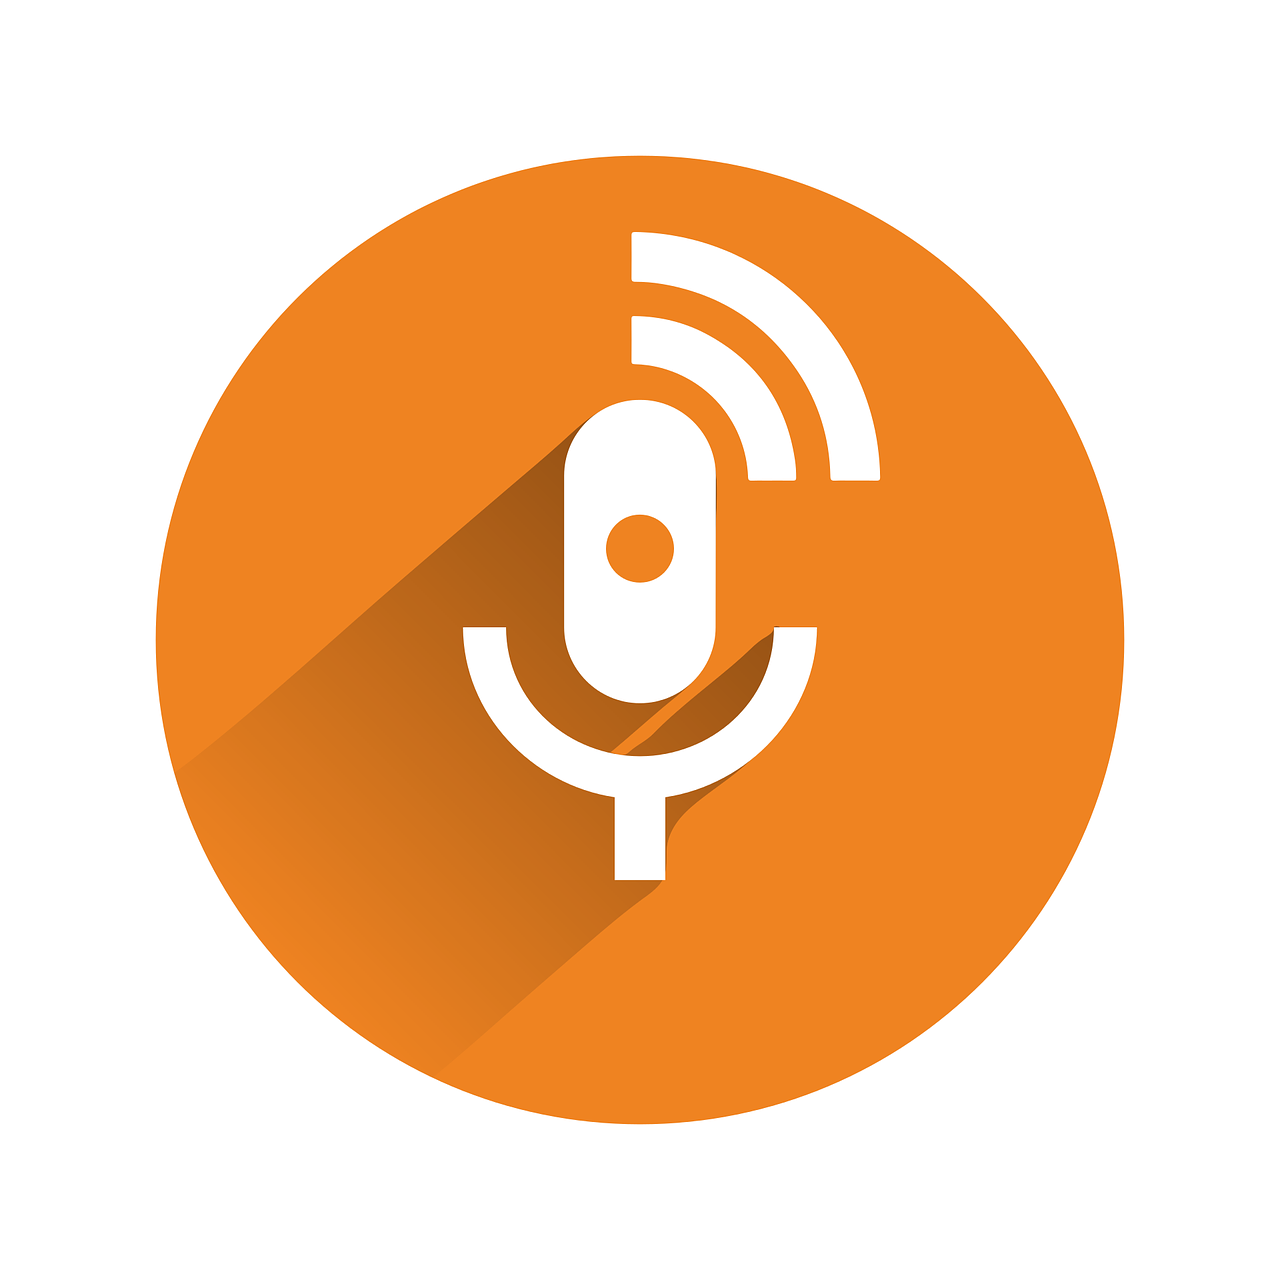 Ecouter le podcast